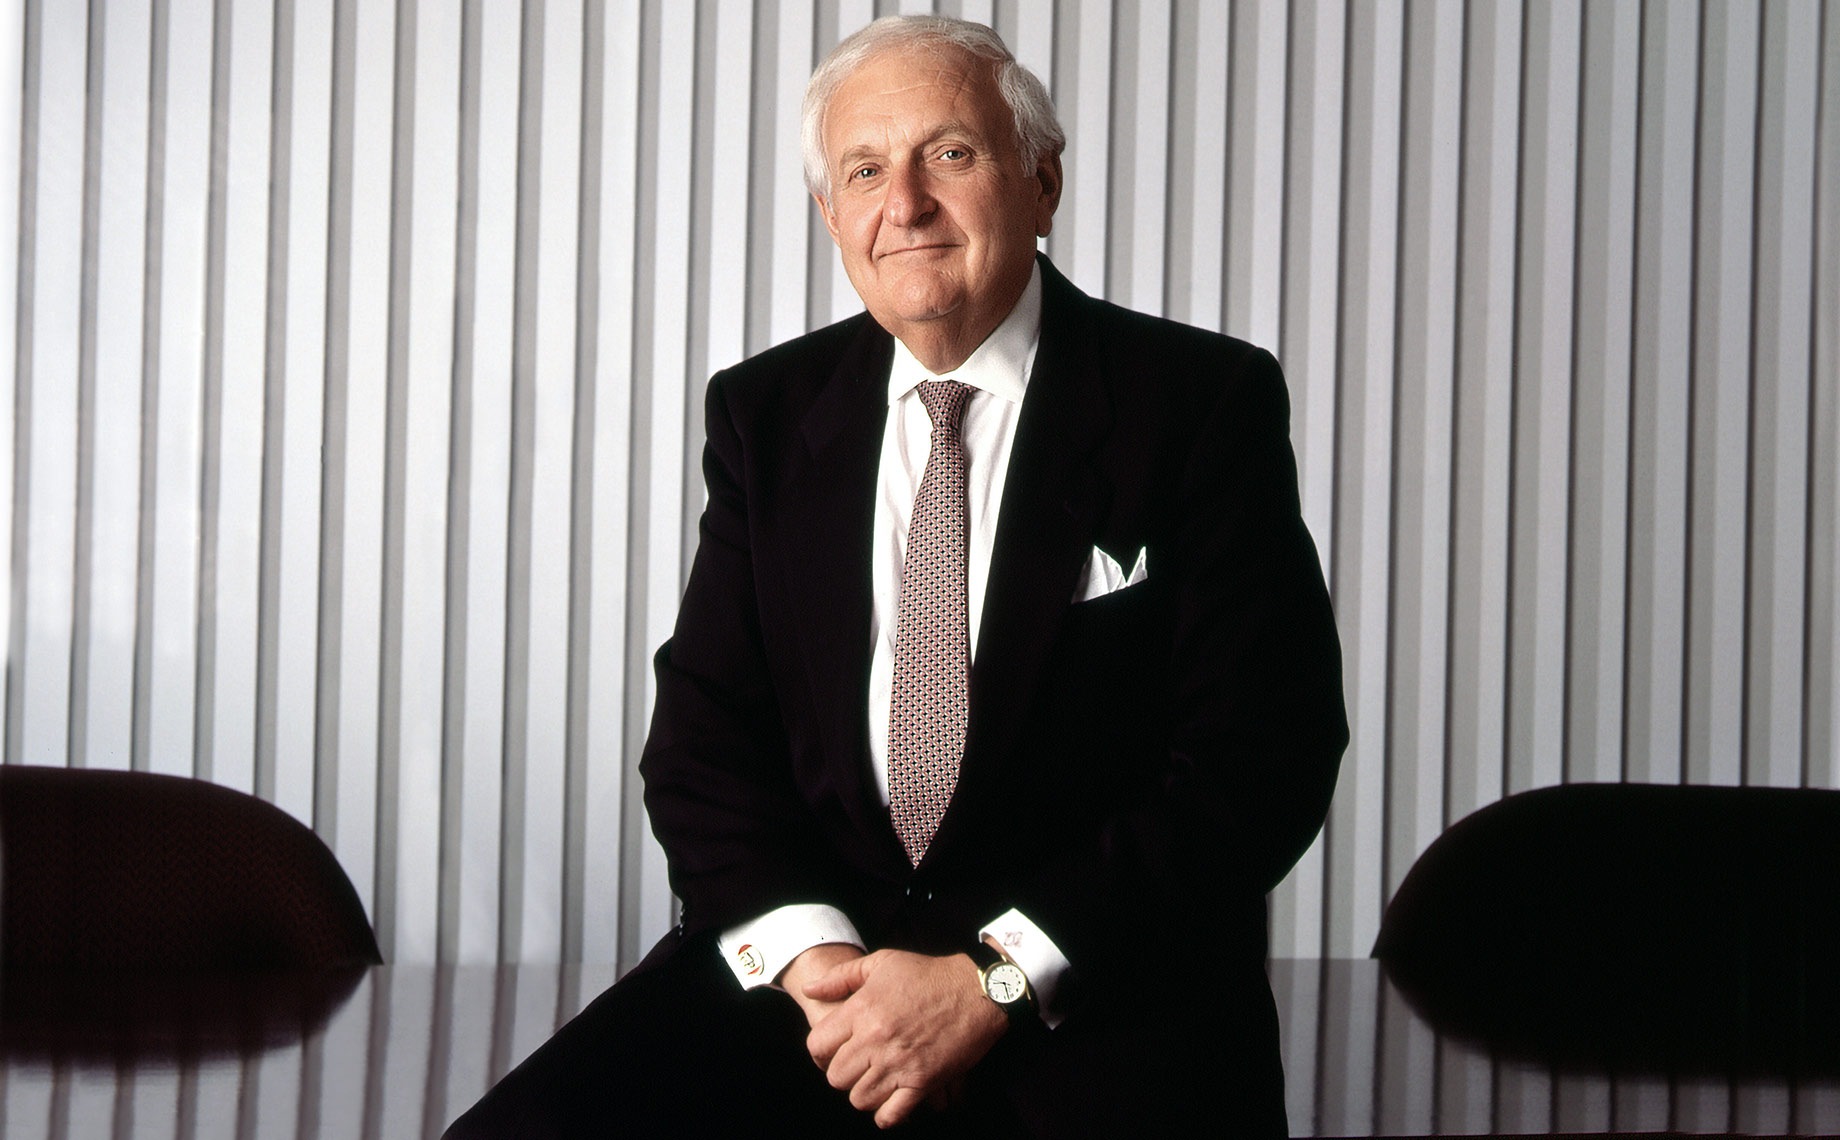 Marshall-Century-Bank-President-Portrait-IP